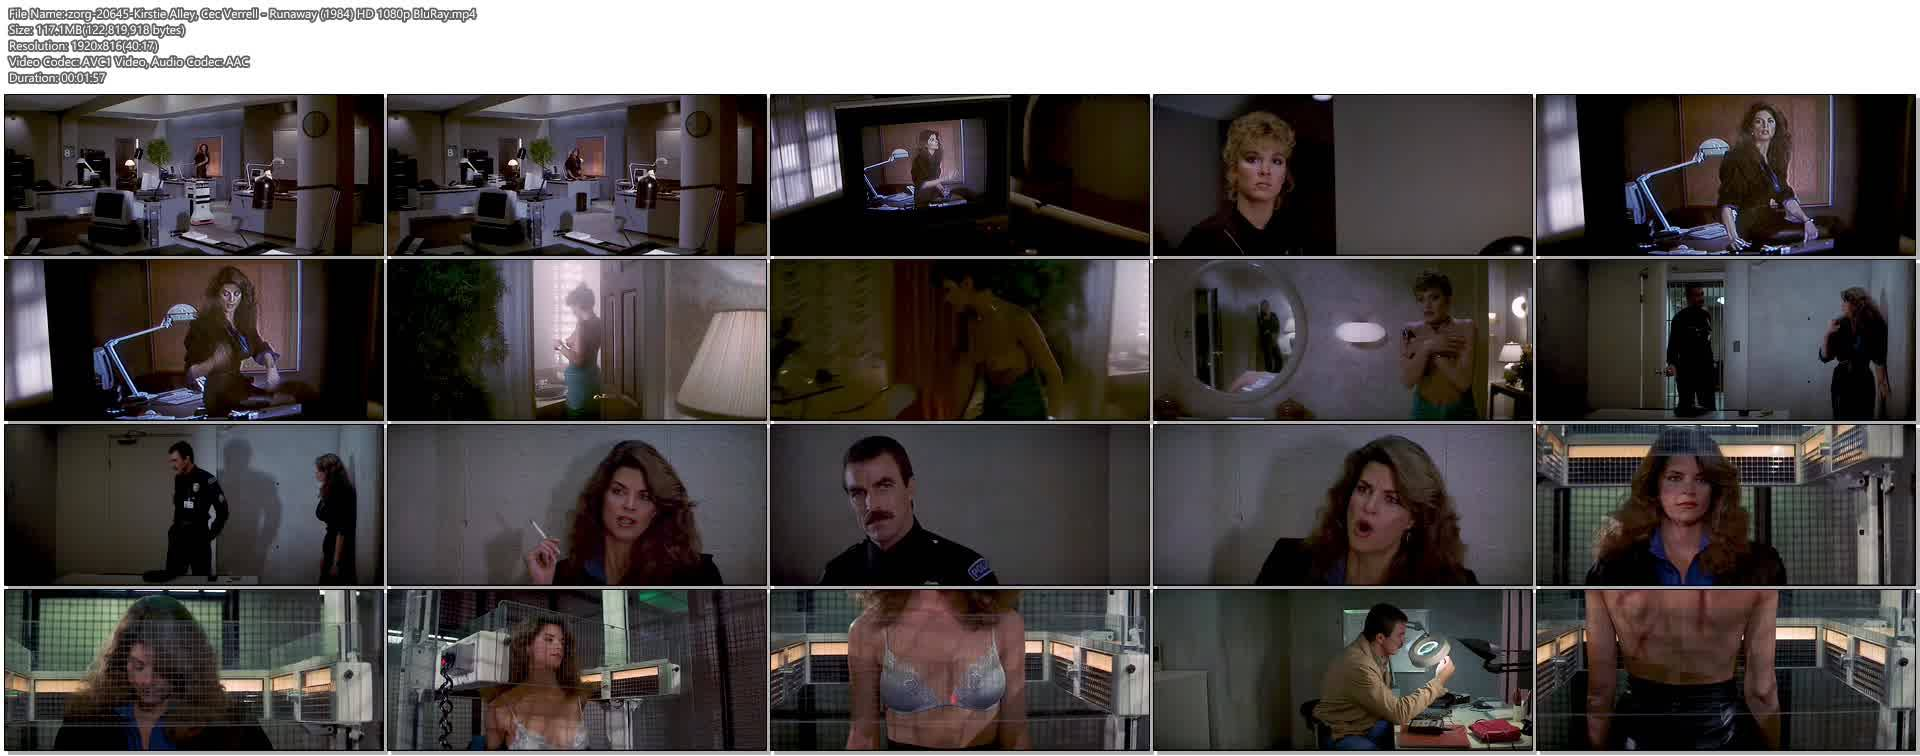 Kirstie Alley Hot And Cec Verrell Nude Topless - Runaway -3680